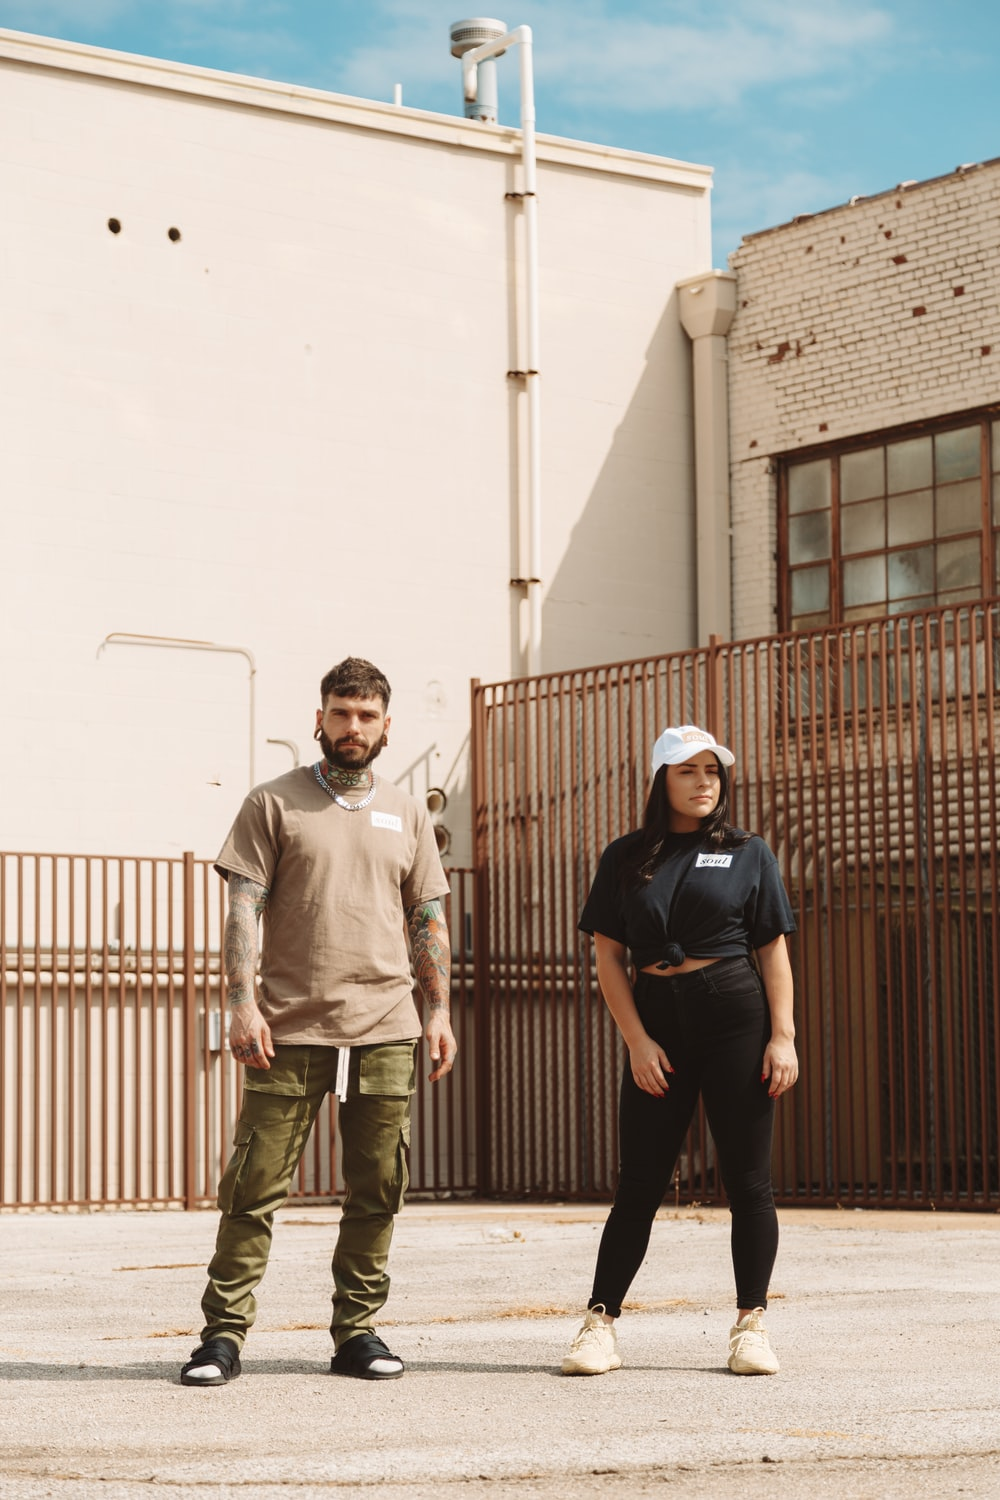 man and woman standing on front of brown building